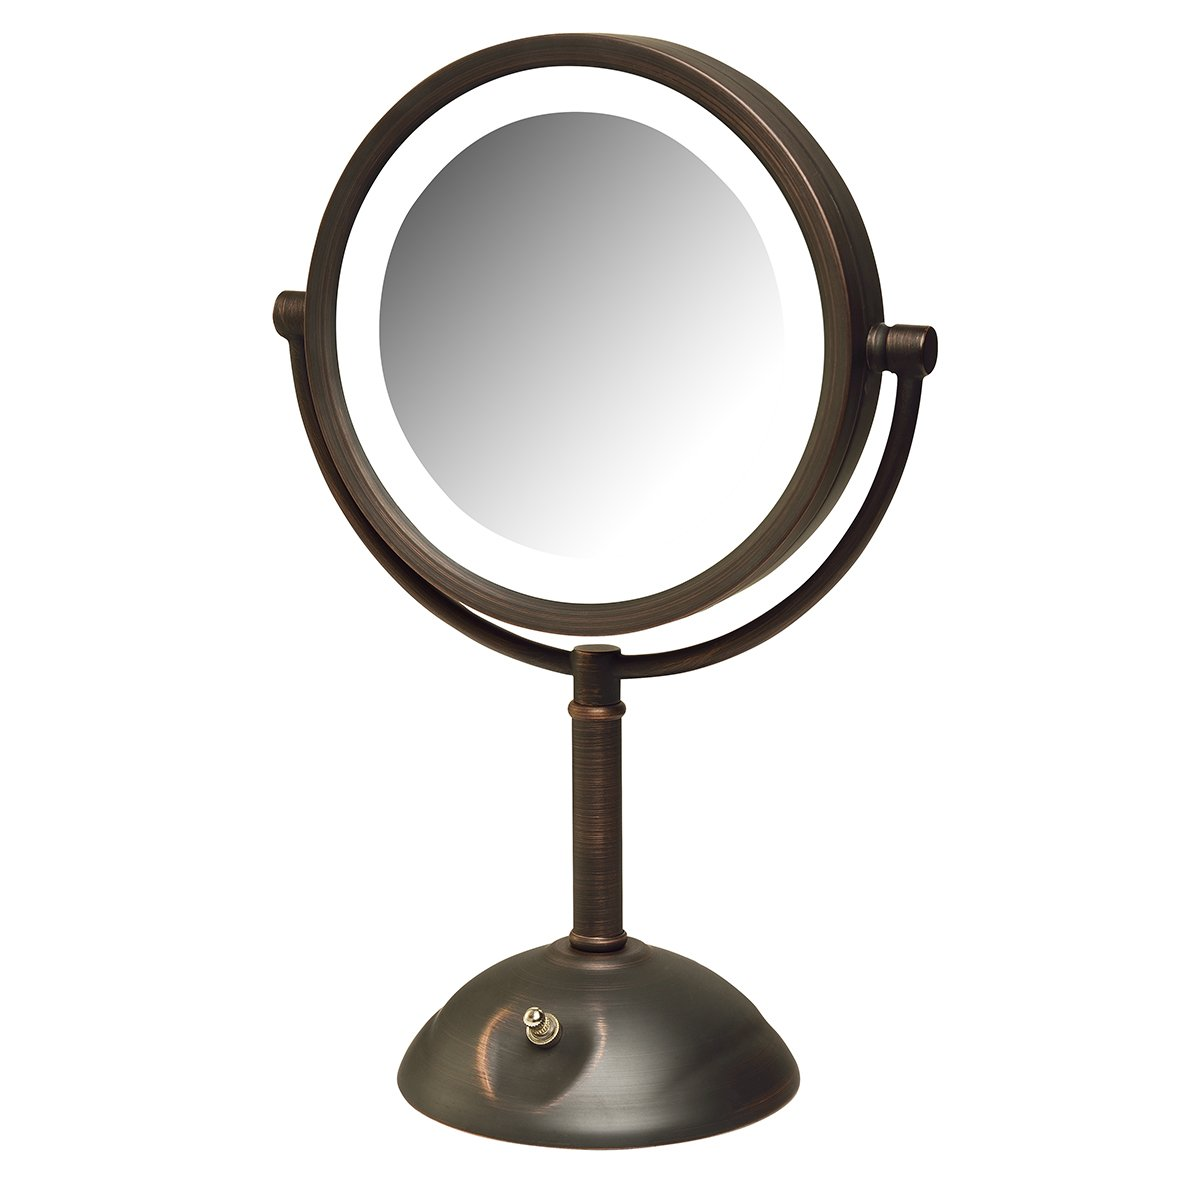 Jerdon HL8808BZL 8X Magnification LED Lighted Table Top Mirror, Bronze